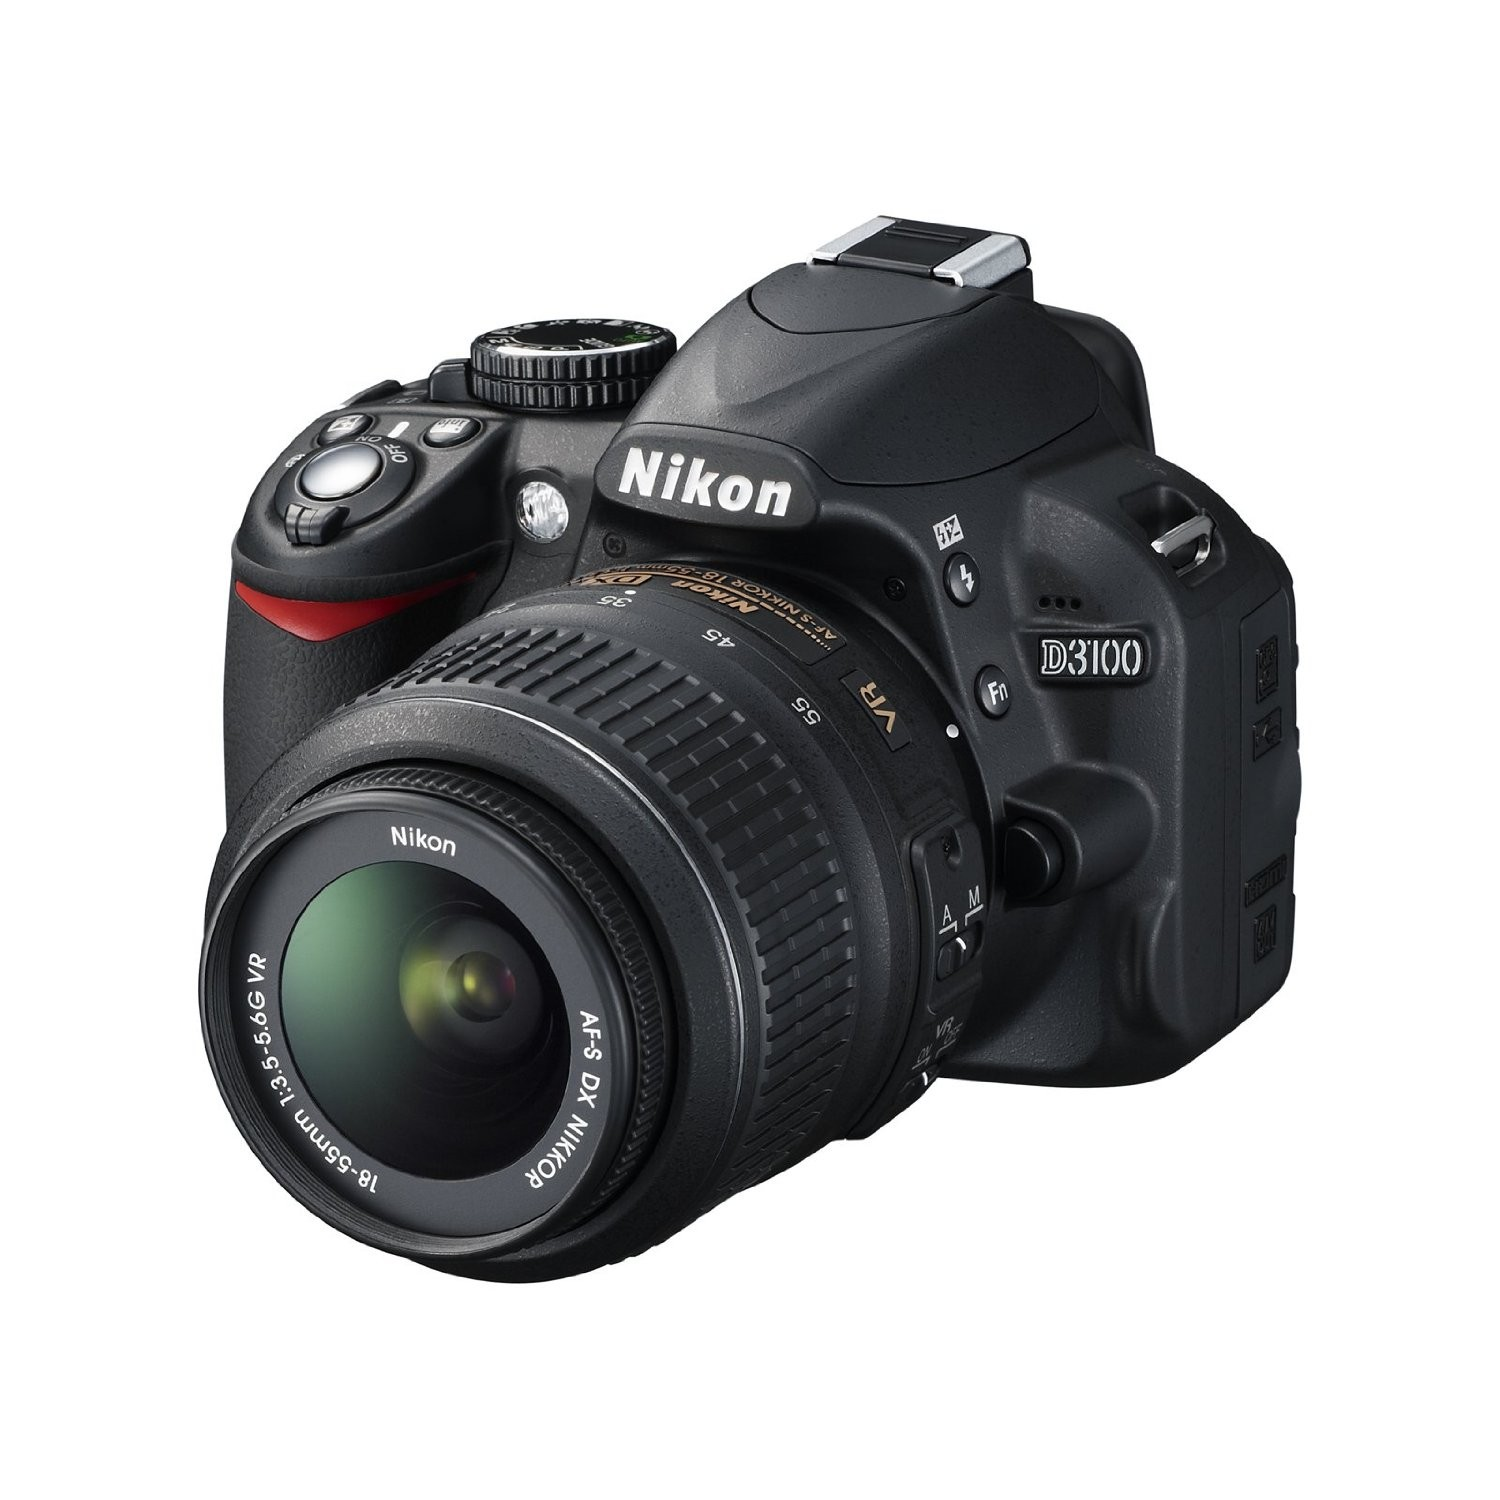 Camera Cheapest Canon Dslr Camera 5 best cheap dslr camera affordable with premium features nikon d3100